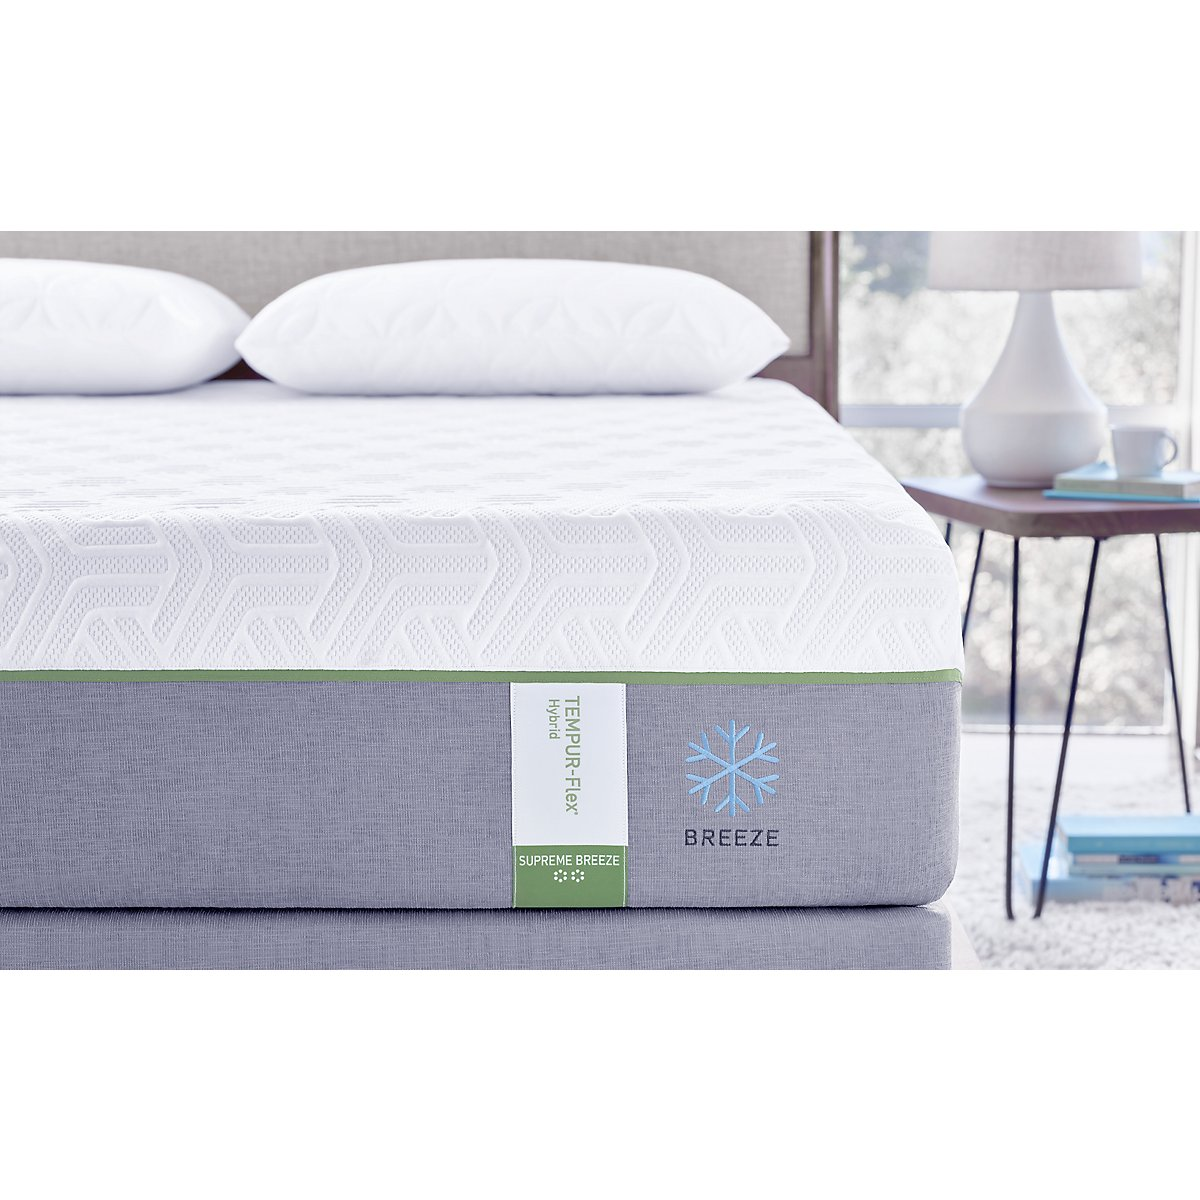 City furniture flx sup bre mattress set for Furniture mattress city